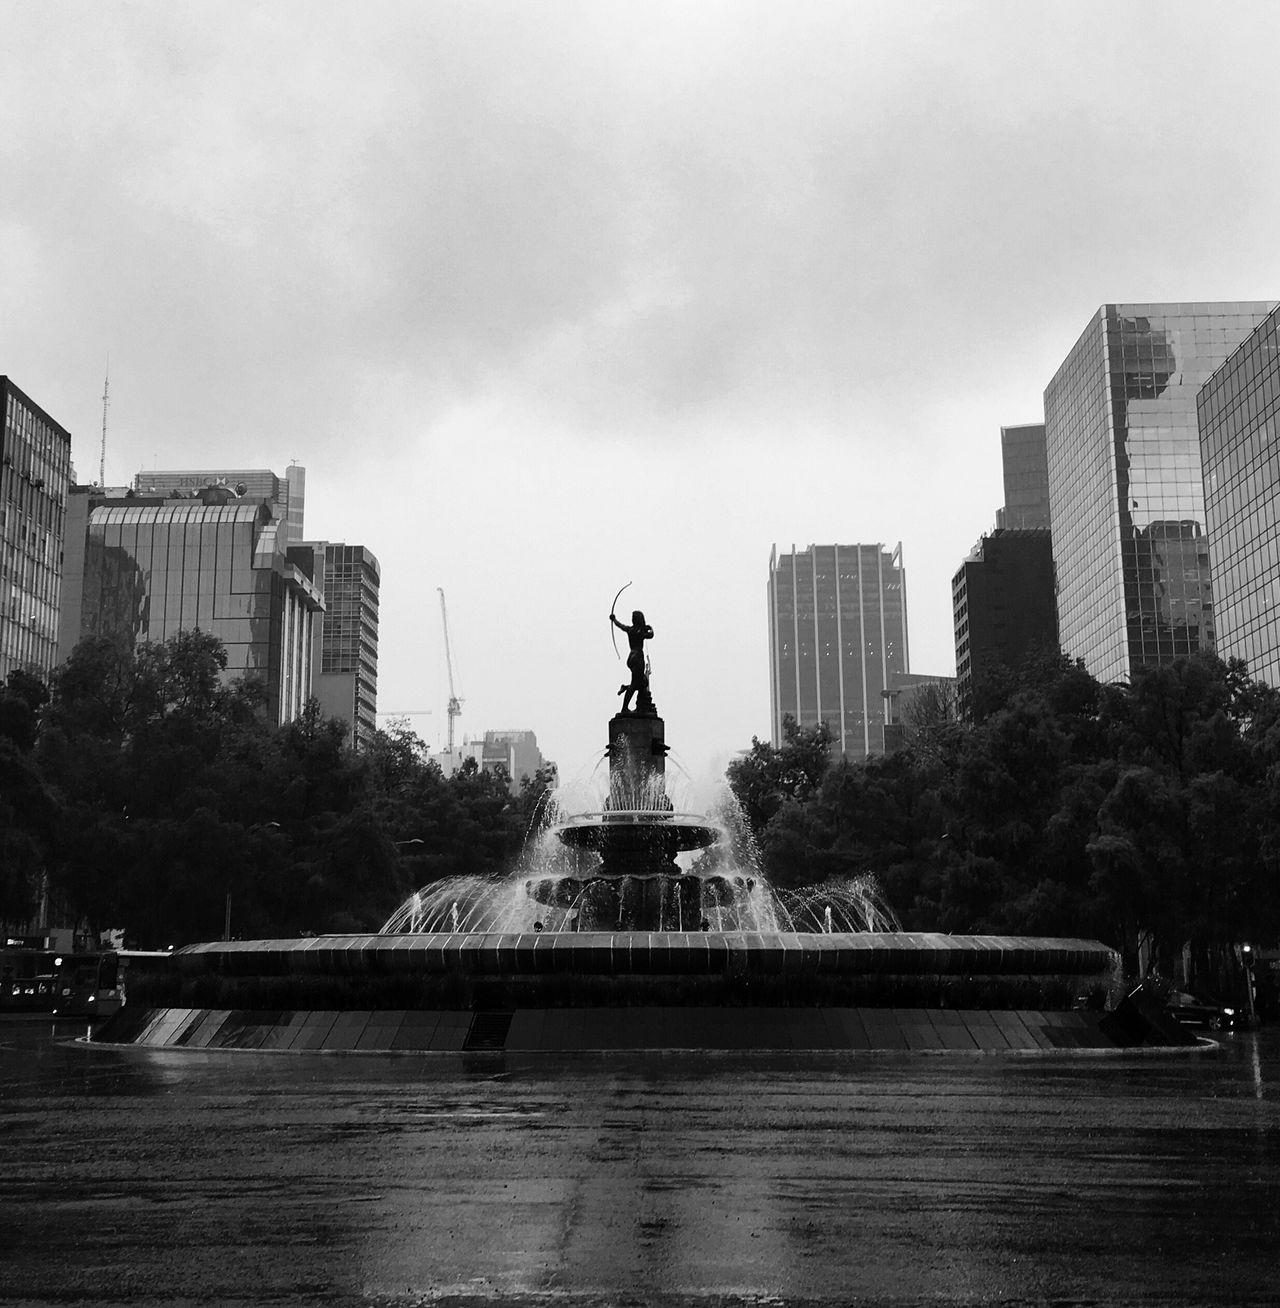 Serie: Monumentos Angel de la Independencia Architecture City Statue EyeEm Best Shots - Black + White Architecture Travel Destinations